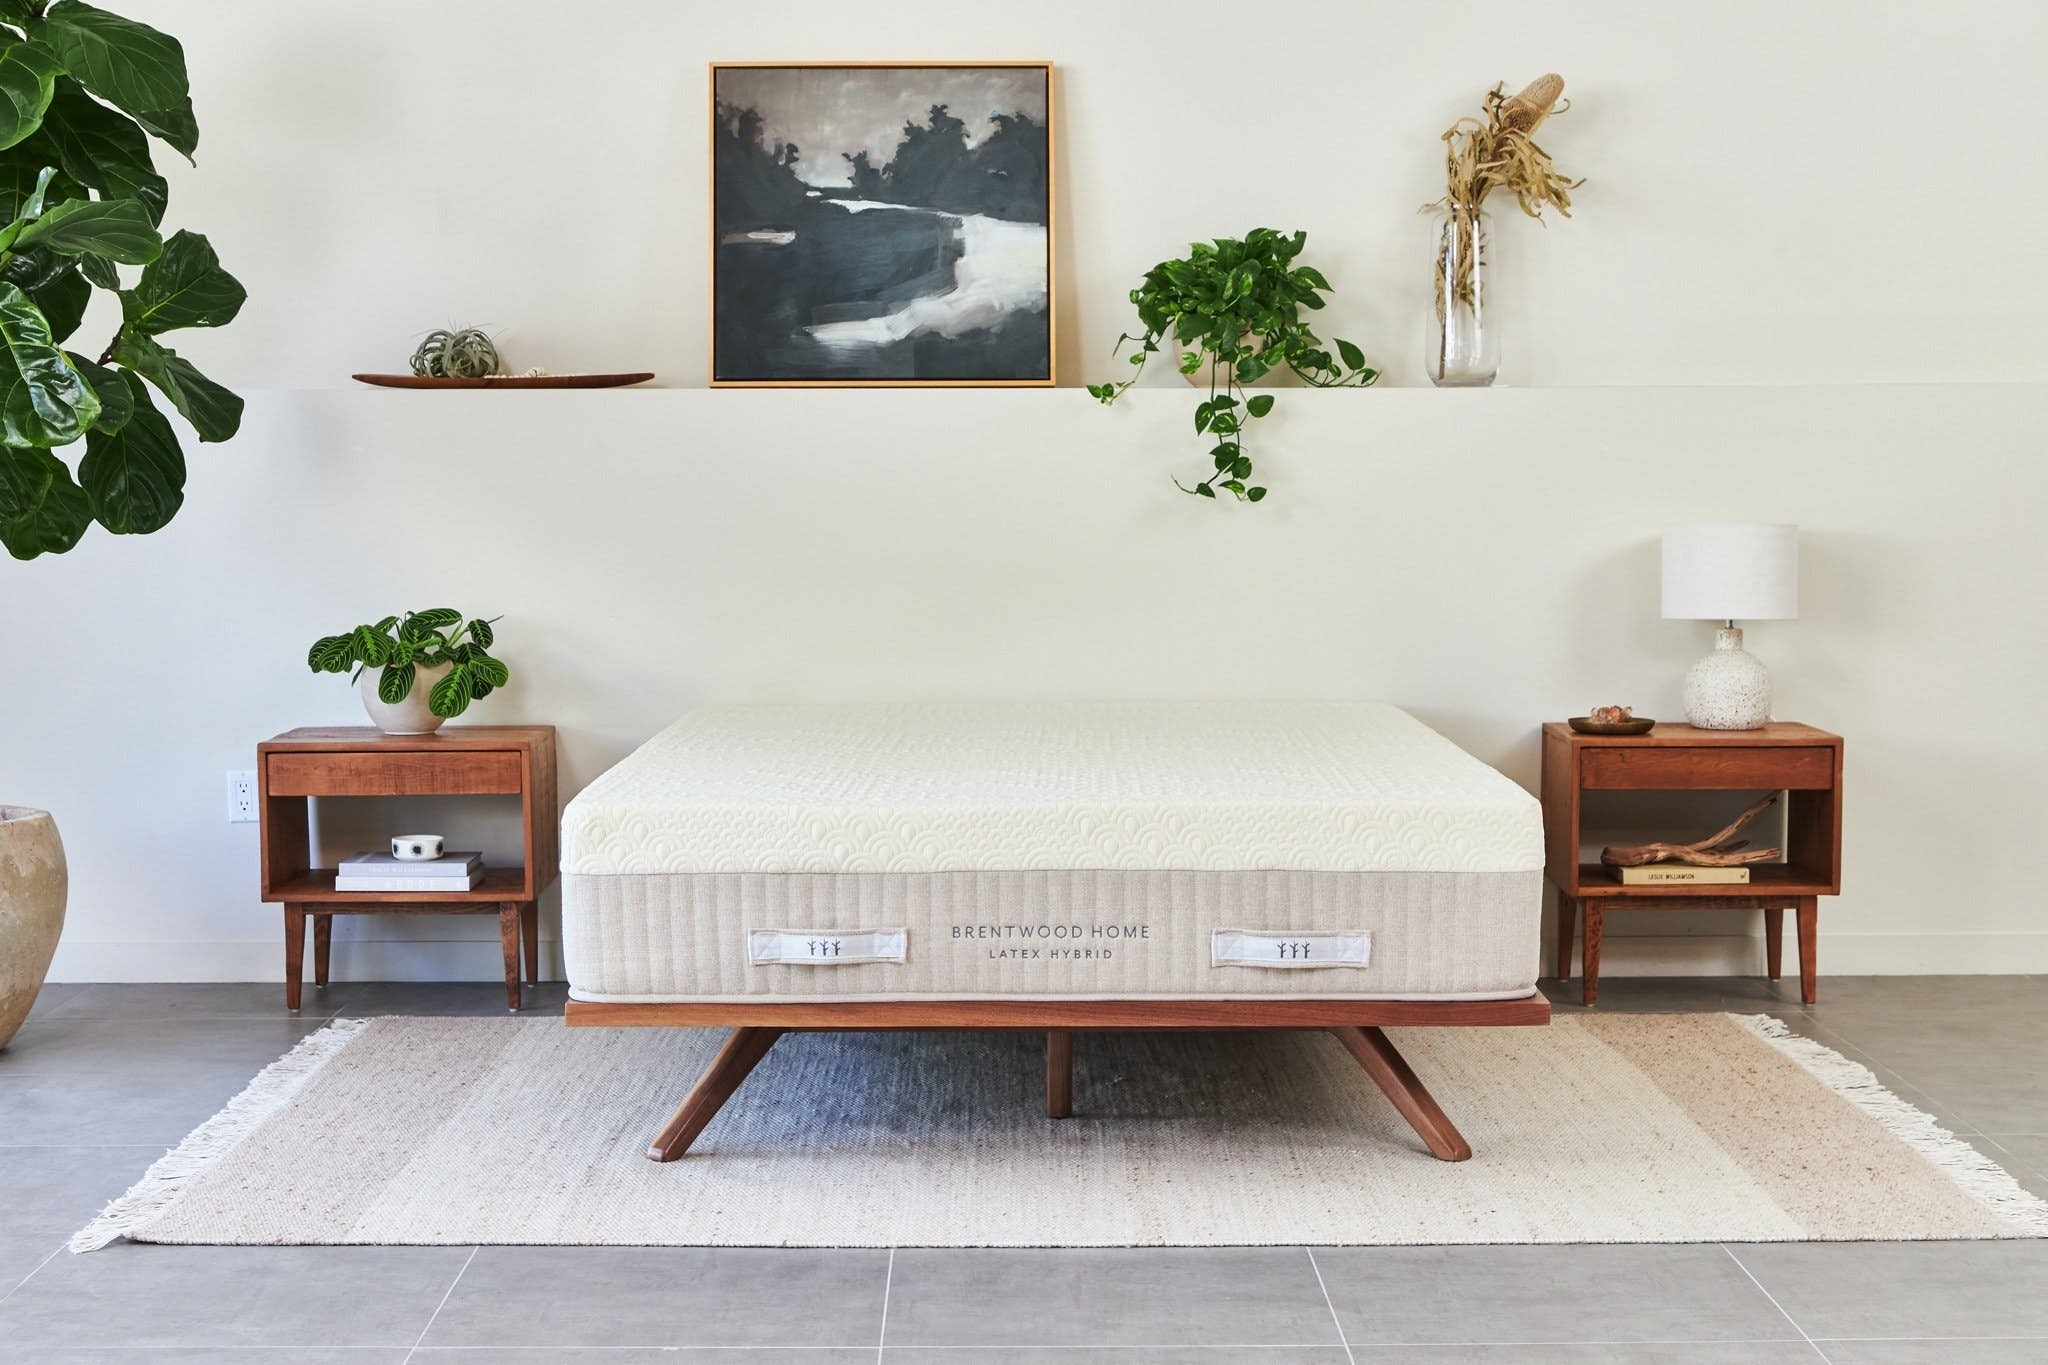 Brentwood Home Hybrid Latex - Mattress Reviews | GoodBed.com